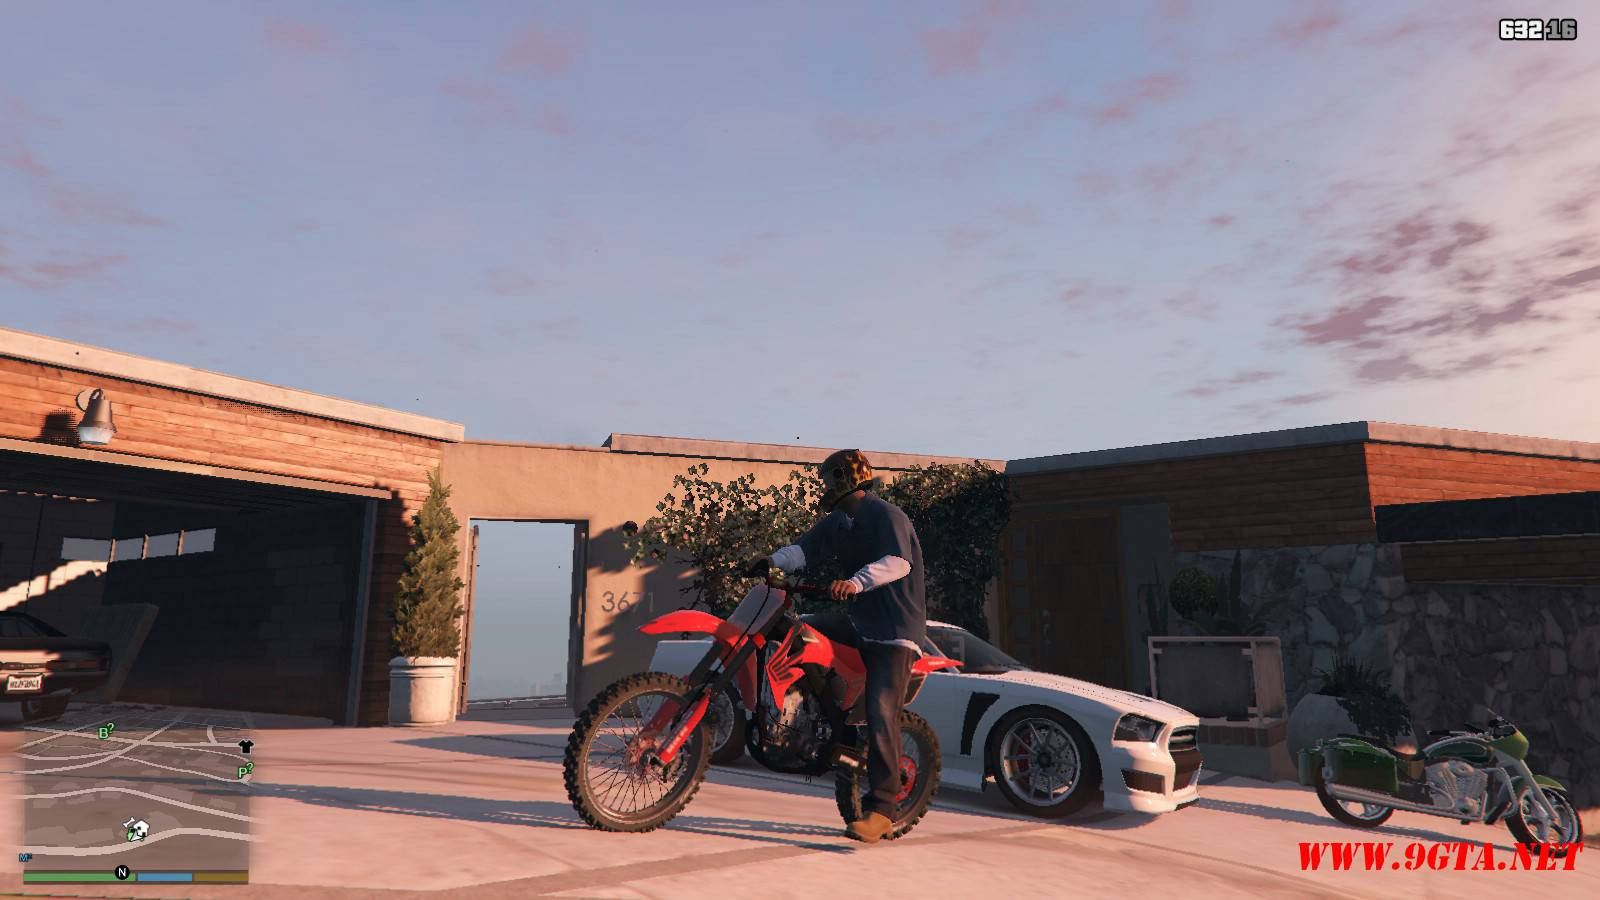 2009 Honda CR450F Special Edition GTA5 Mods (1)